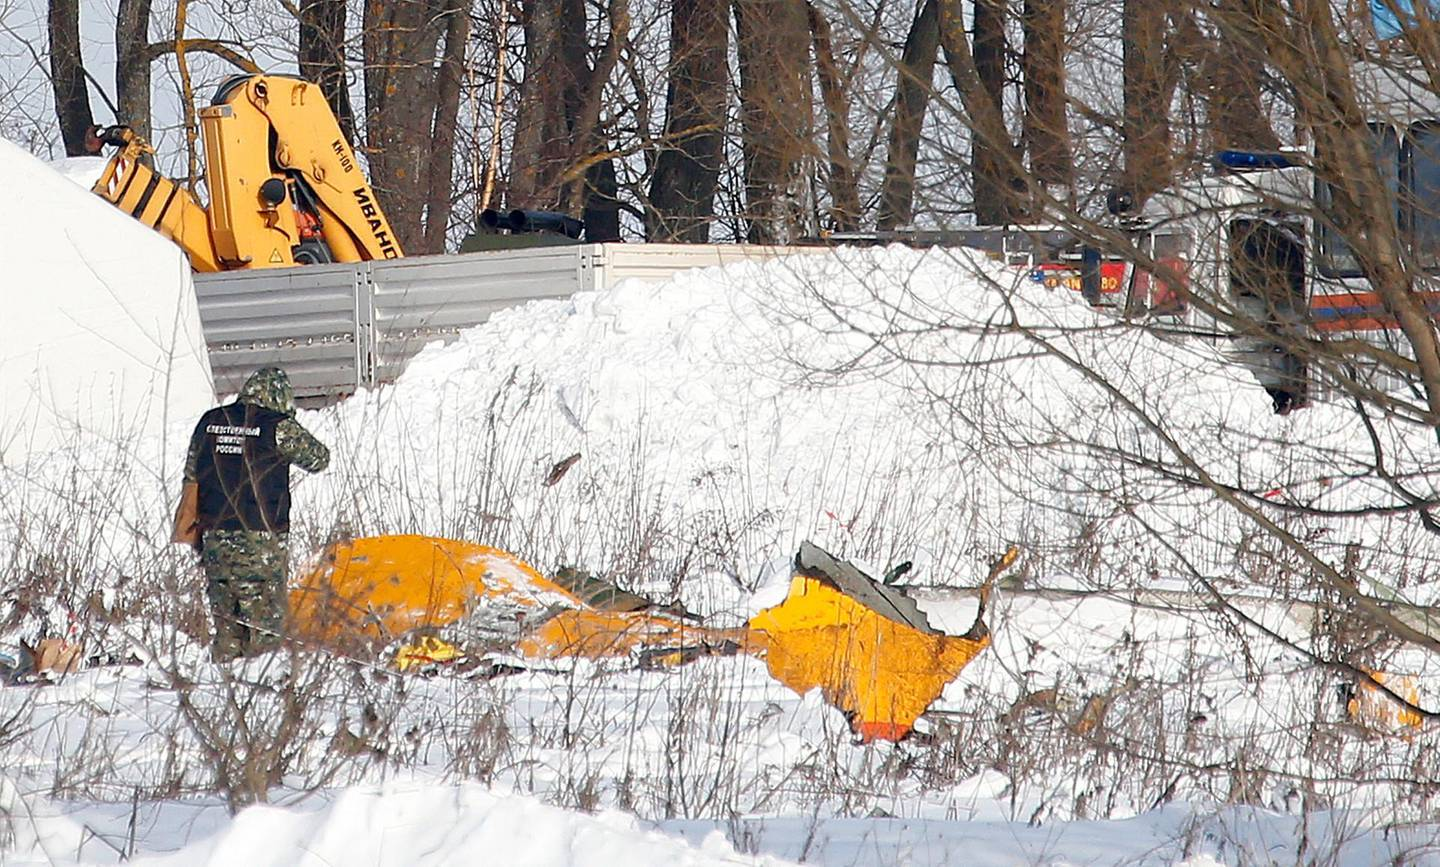 A man looks at wreckage near the scene of a AN-148 plane crash in Stepanovskoye village, about 40 kilometers (25 miles) from the Domodedovo airport, Russia, Monday, Feb. 12, 2018. A Russian passenger plane carrying 71 people crashed Sunday near Moscow, killing everyone aboard shortly after the jet took off from one of the city's airports. The Saratov Airlines regional jet disappeared from radar screens a few minutes after departing from Domodedovo Airport en route to Orsk, a city some 1,500 kilometers (1,000 miles) southeast of Moscow. (AP Photo/Alexander Zemlianichenko)